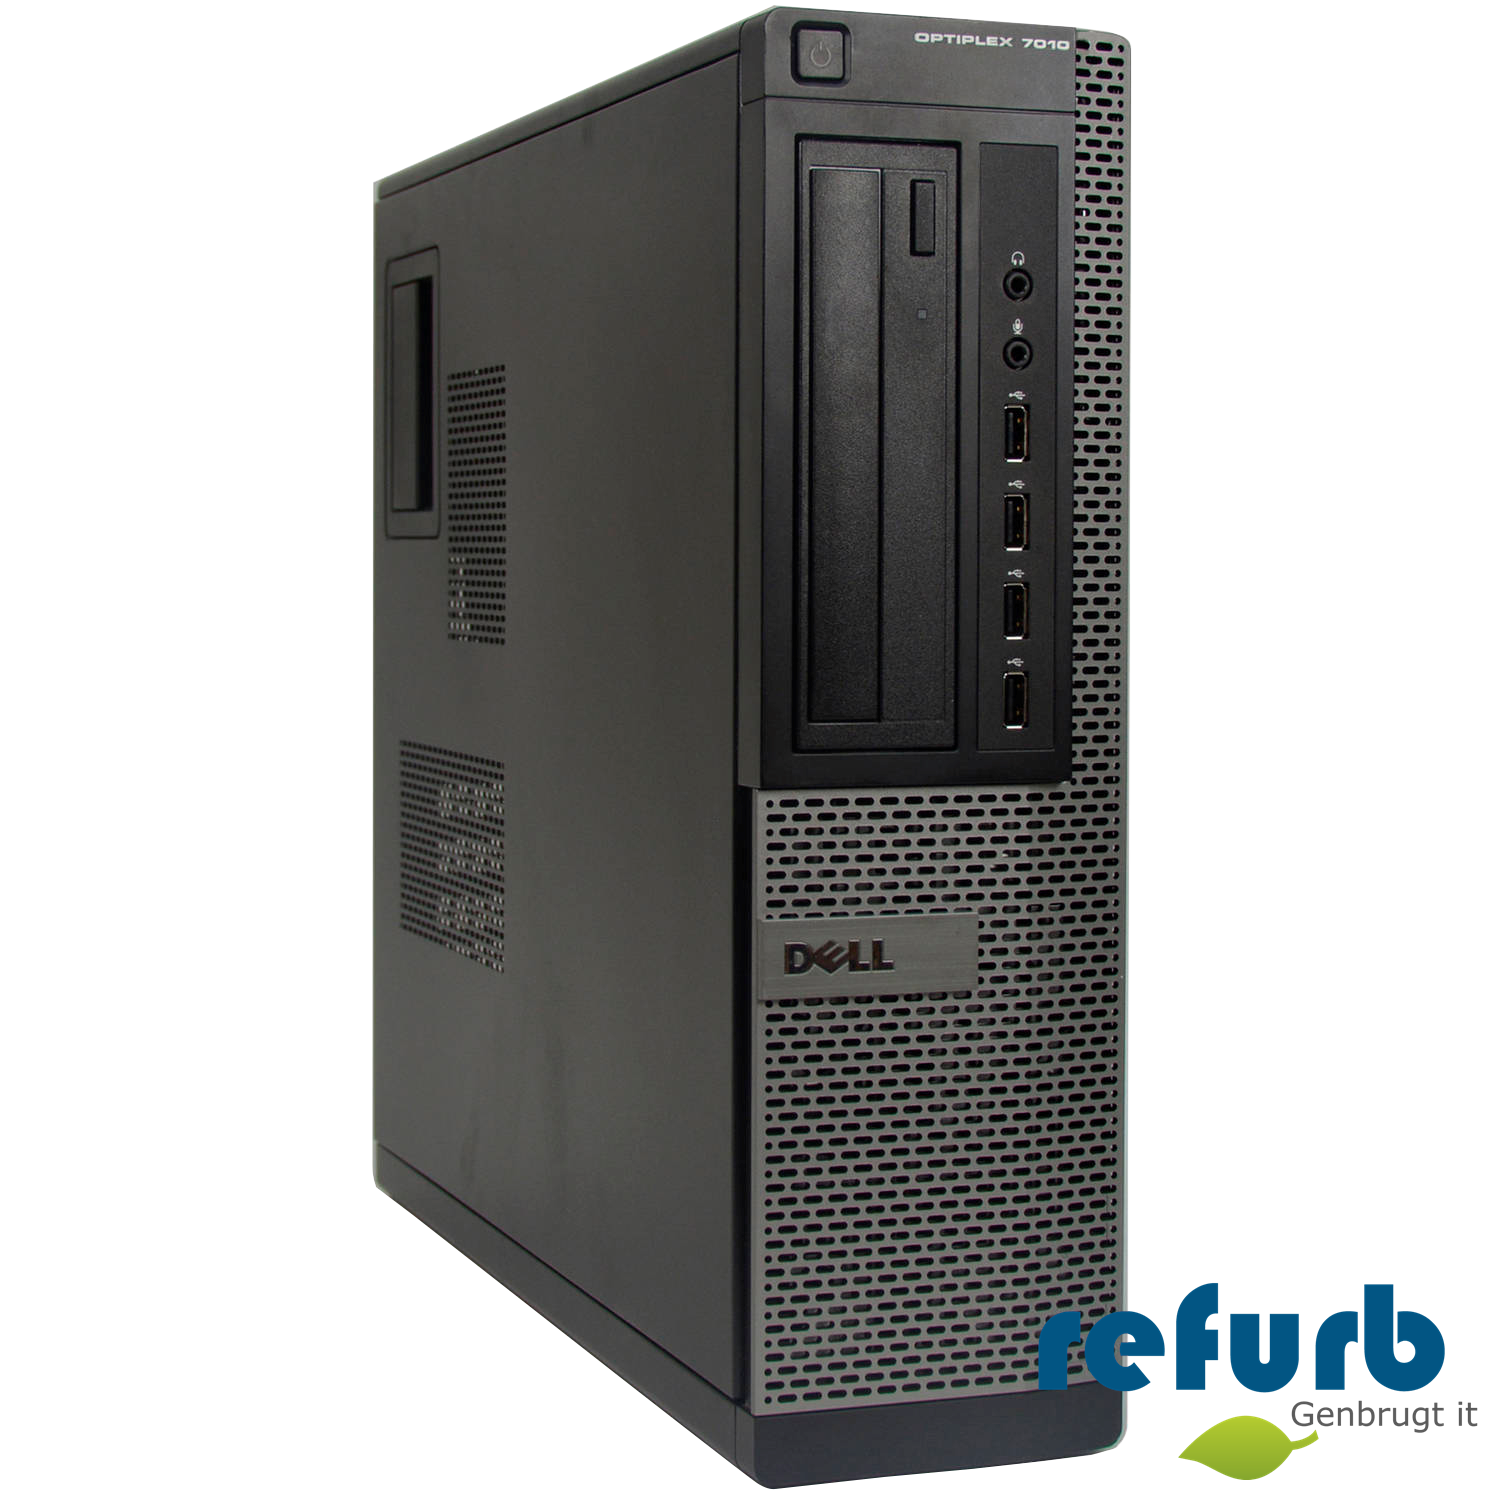 Dell – Dell optiplex 790 dt på refurb